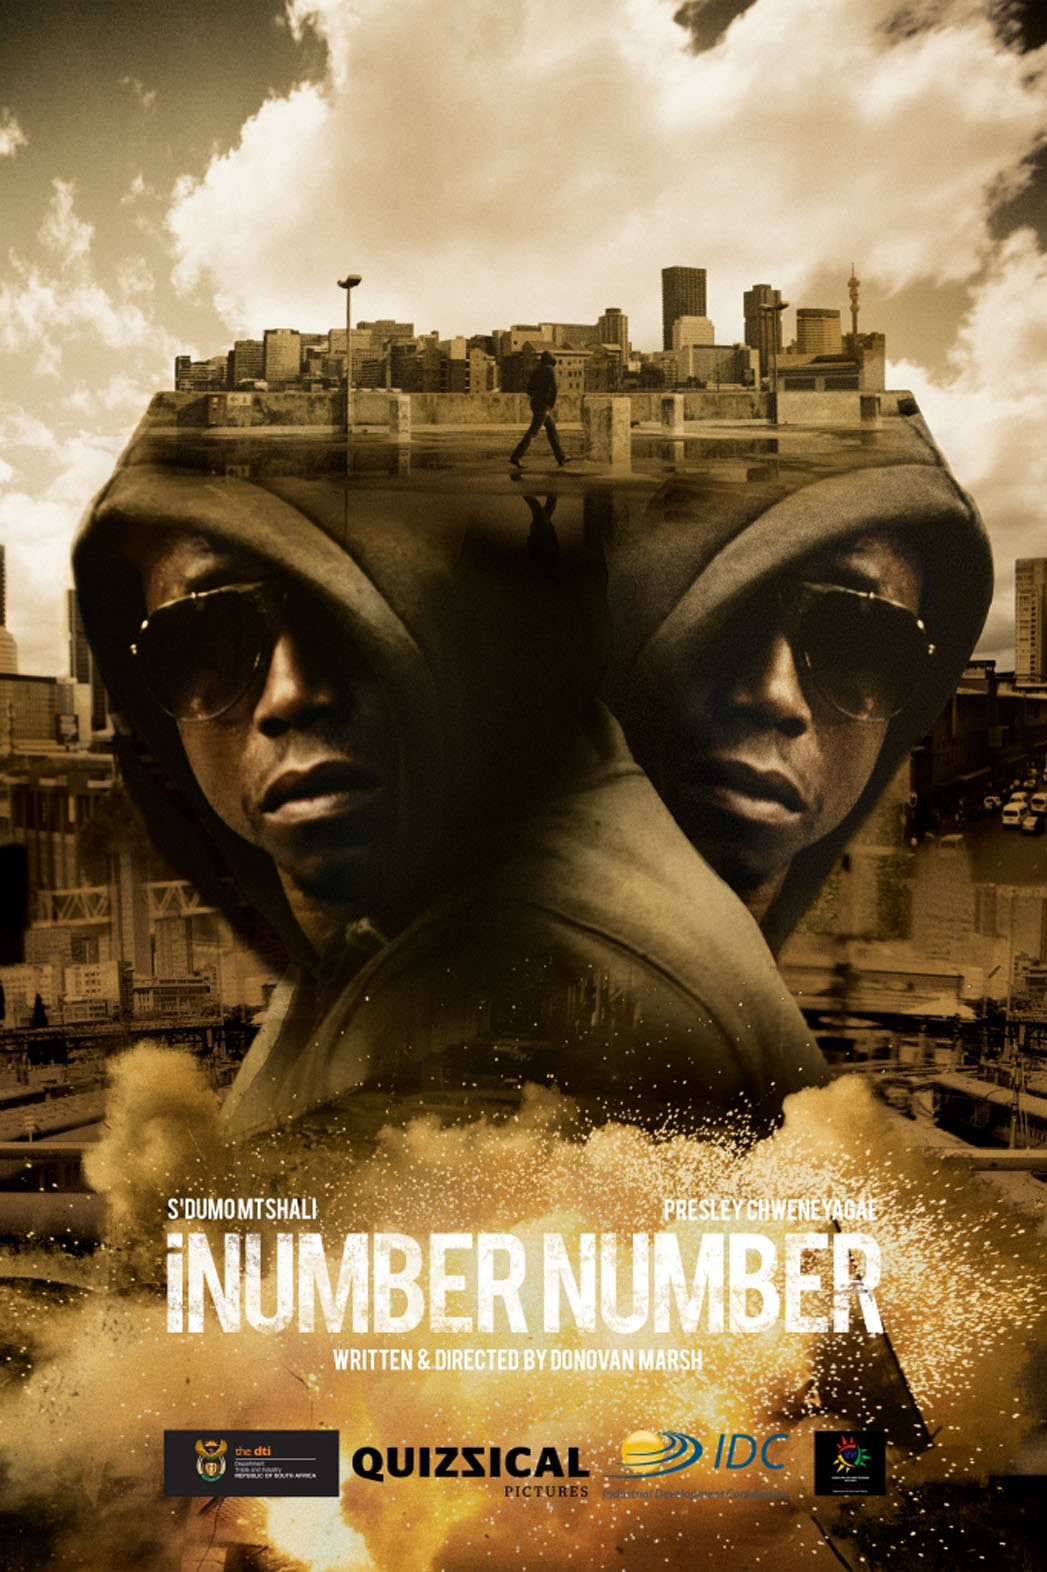 iNumber Number Movie Poster - H 2013